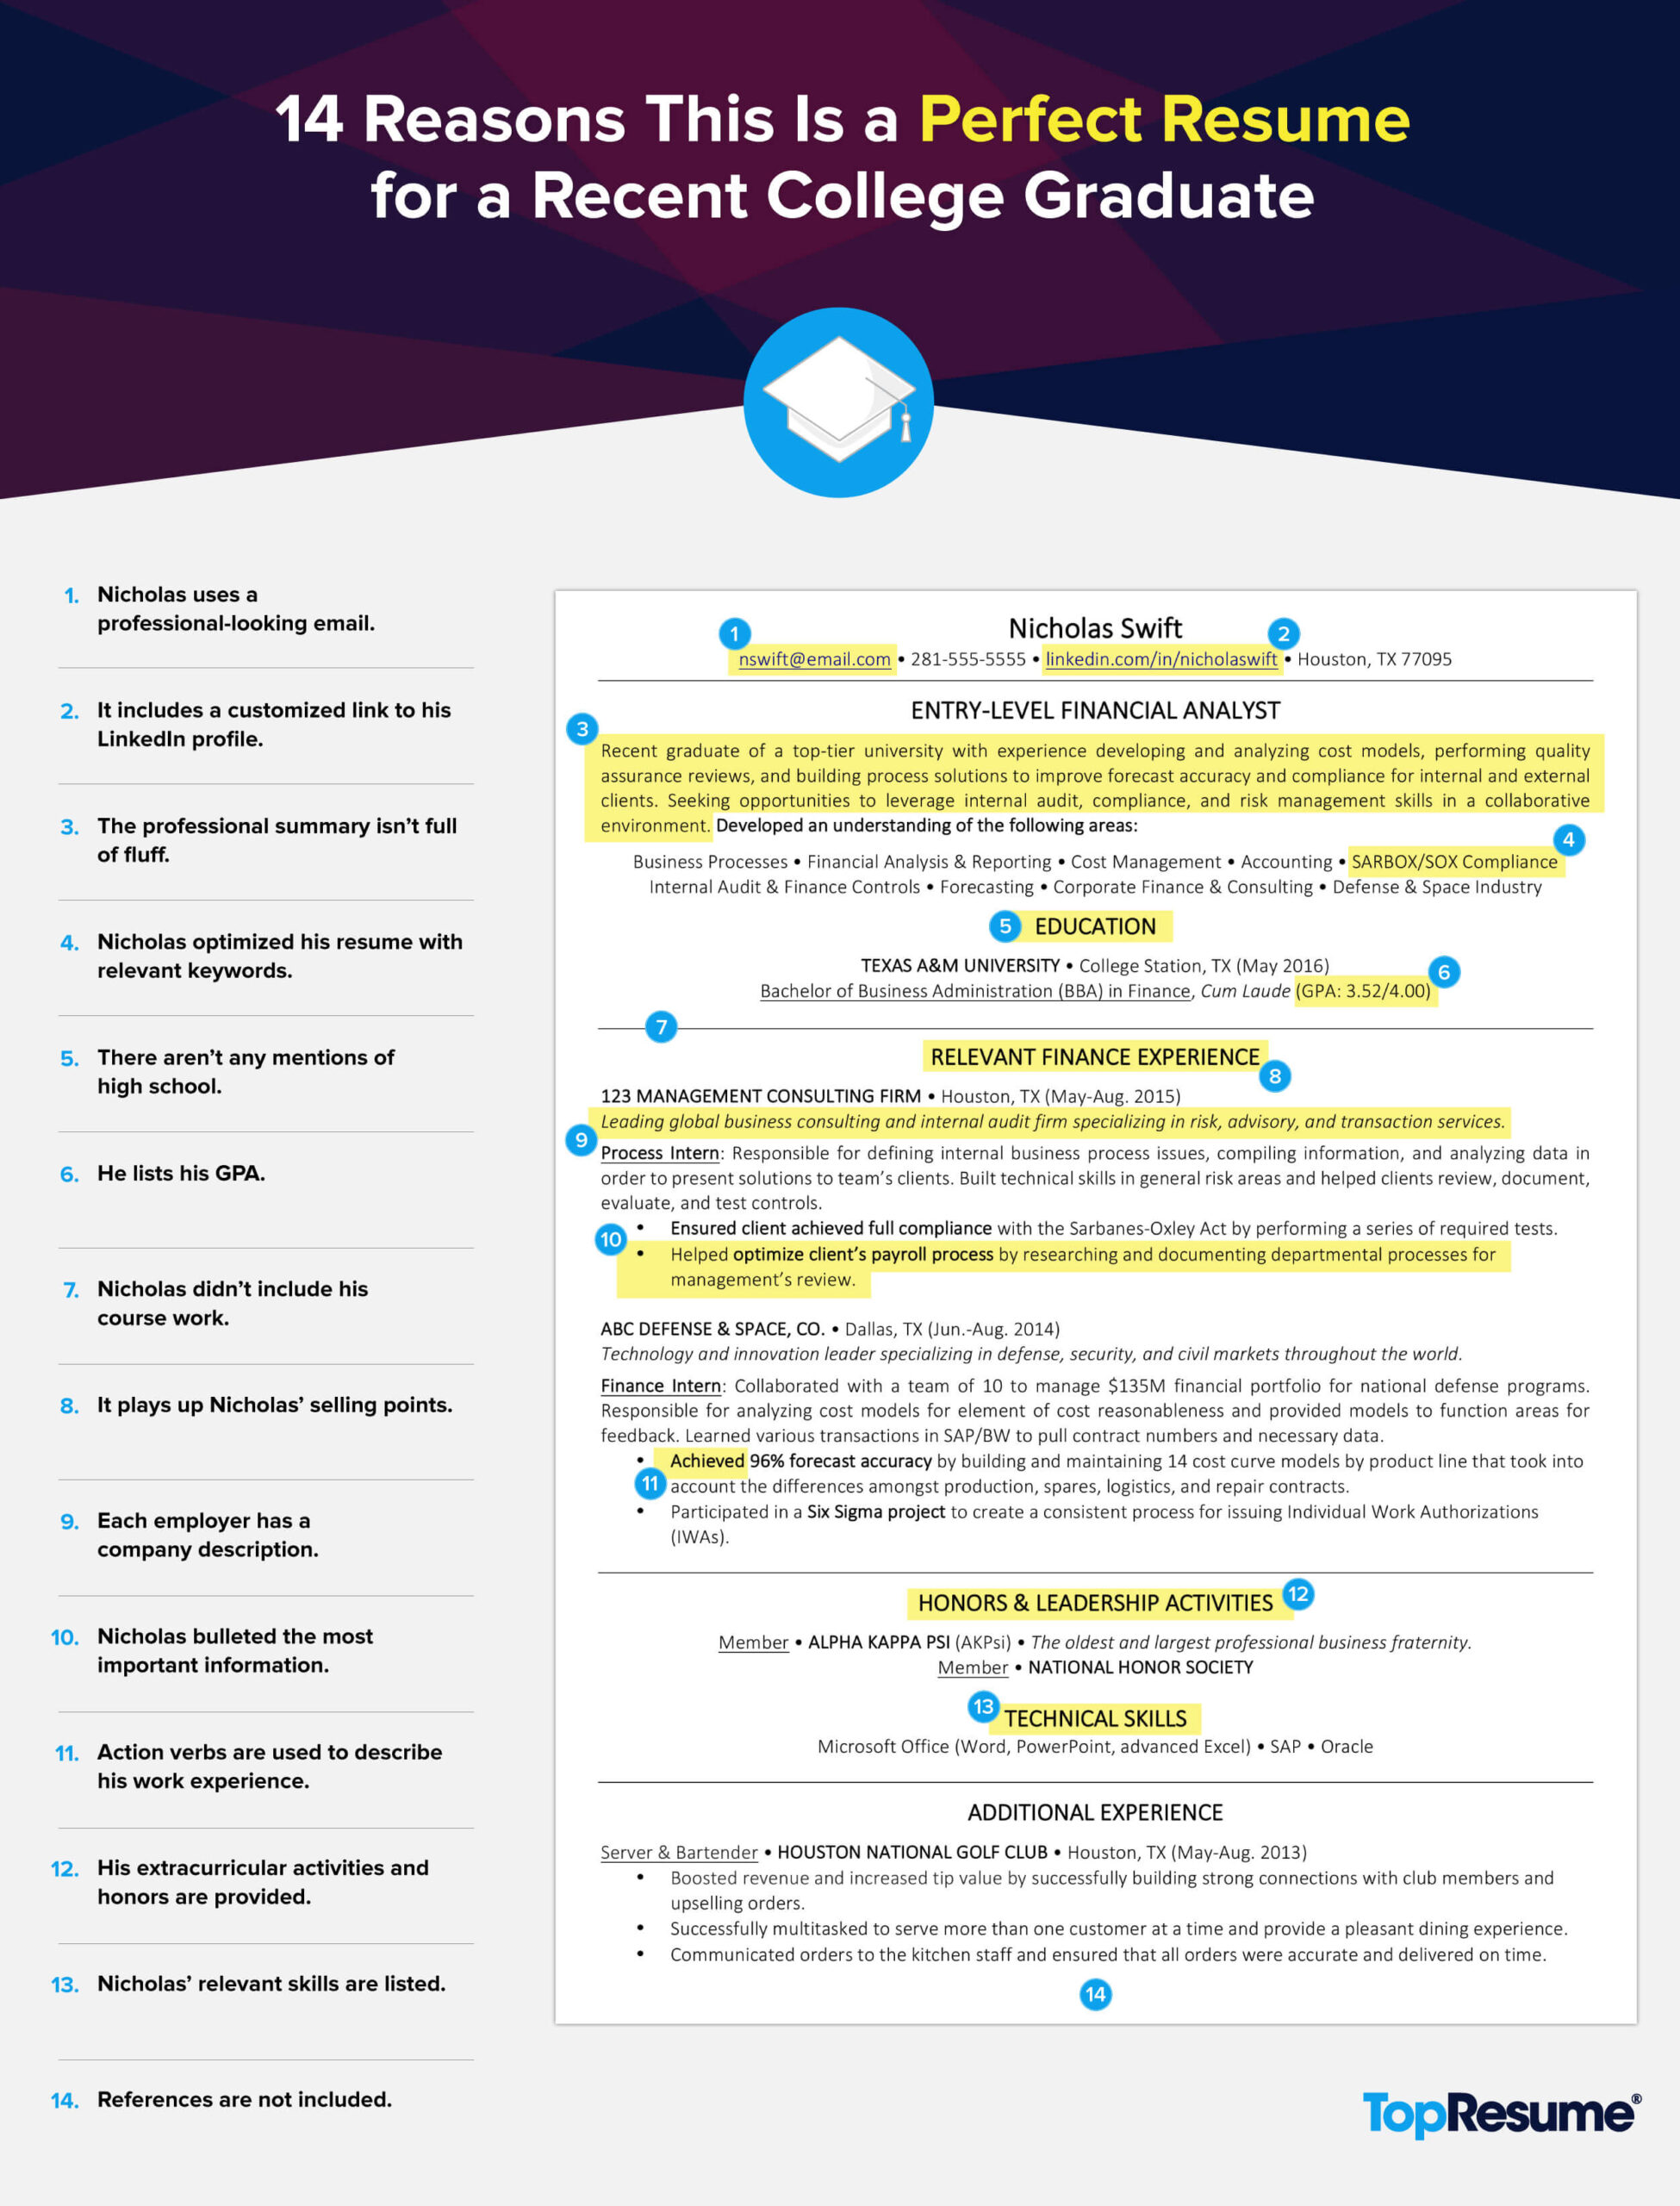 reasons this is perfect recent college graduate resume topresume examples 160516graduate Resume Recent College Graduate Resume Examples